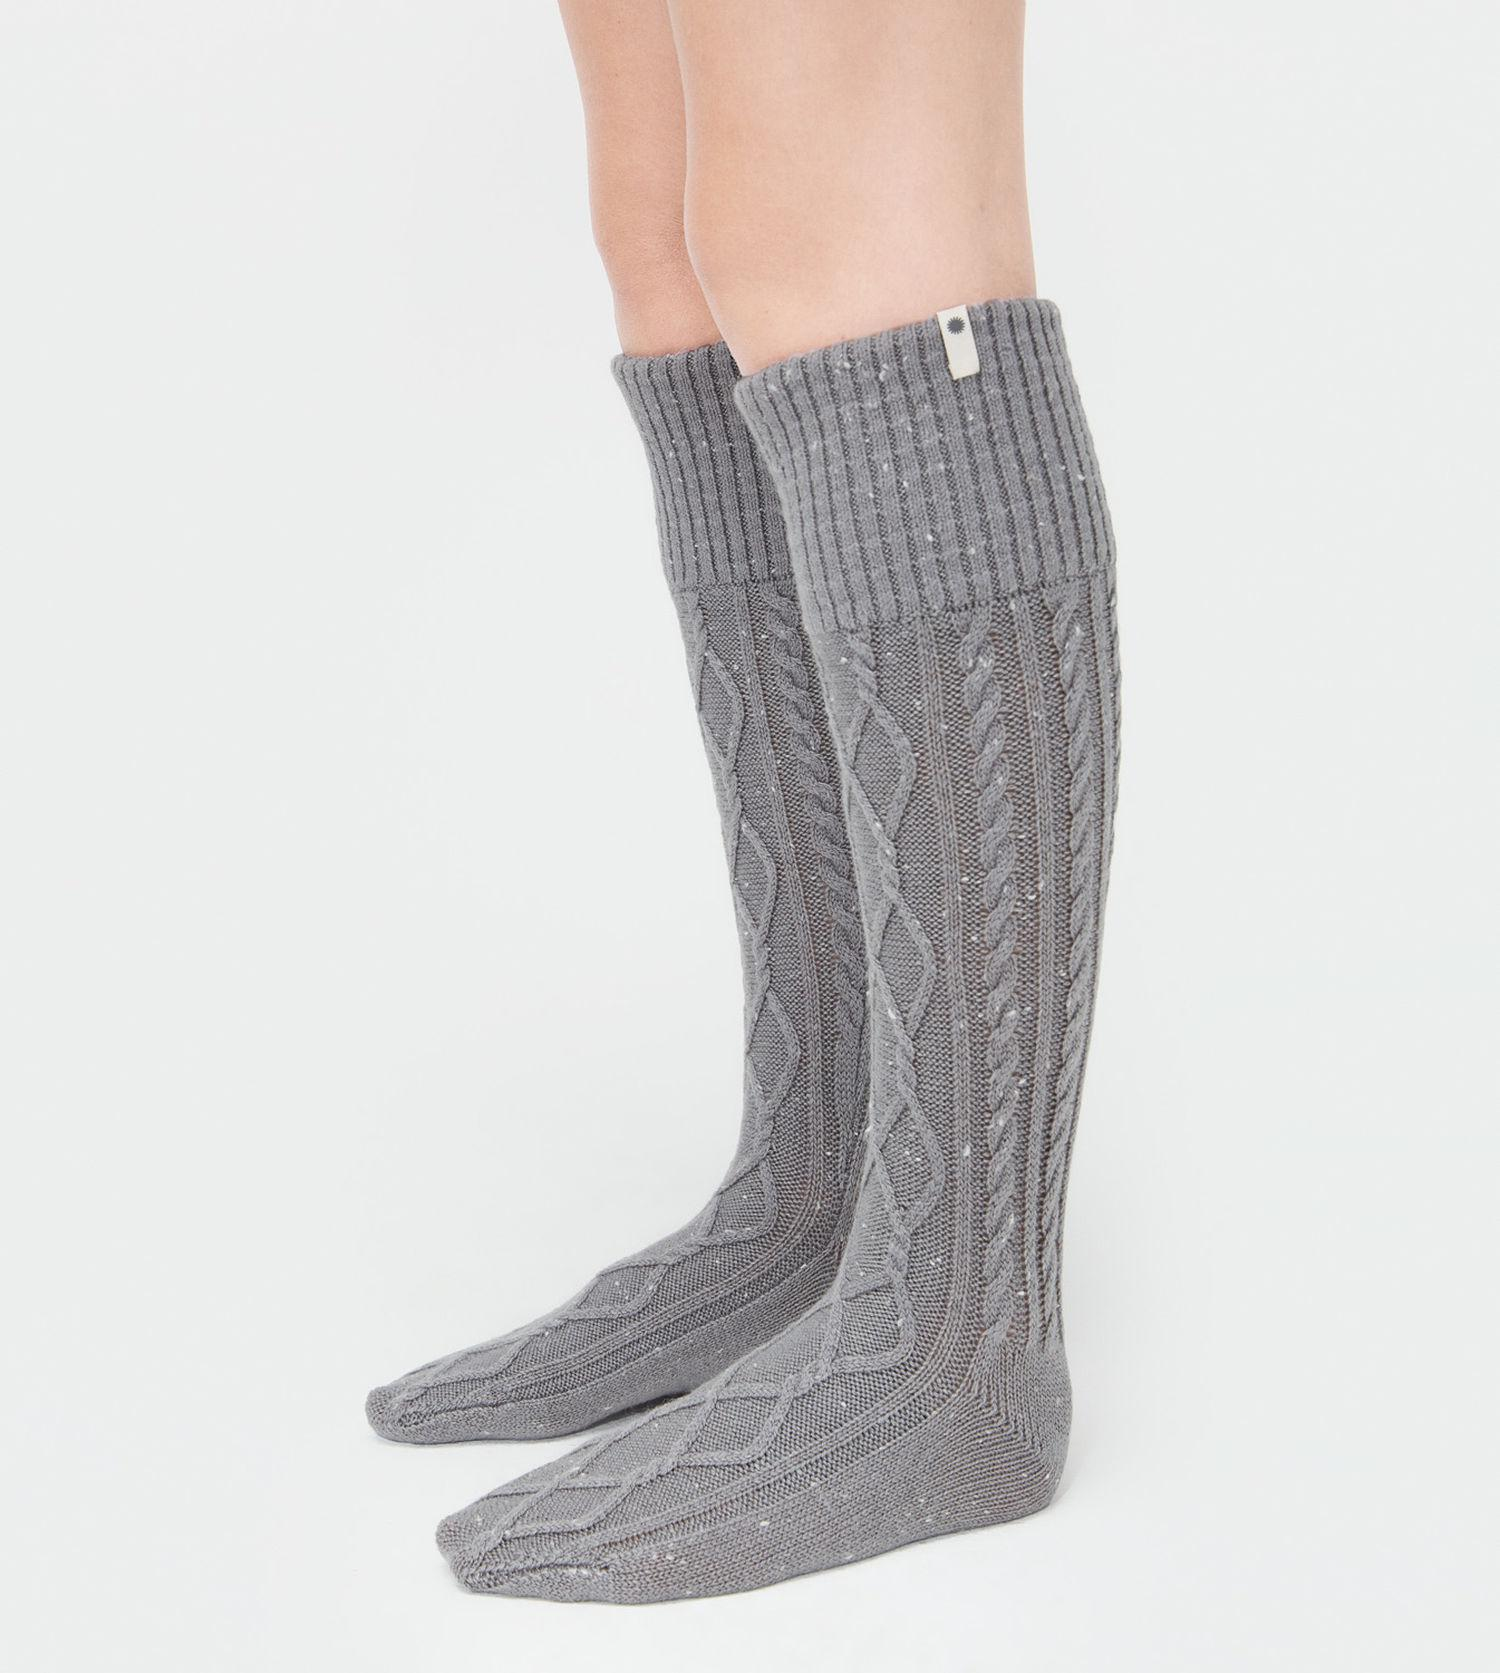 d7c12d99769 Womens Tall Rain Boot Socks - Image Sock and Collections ...